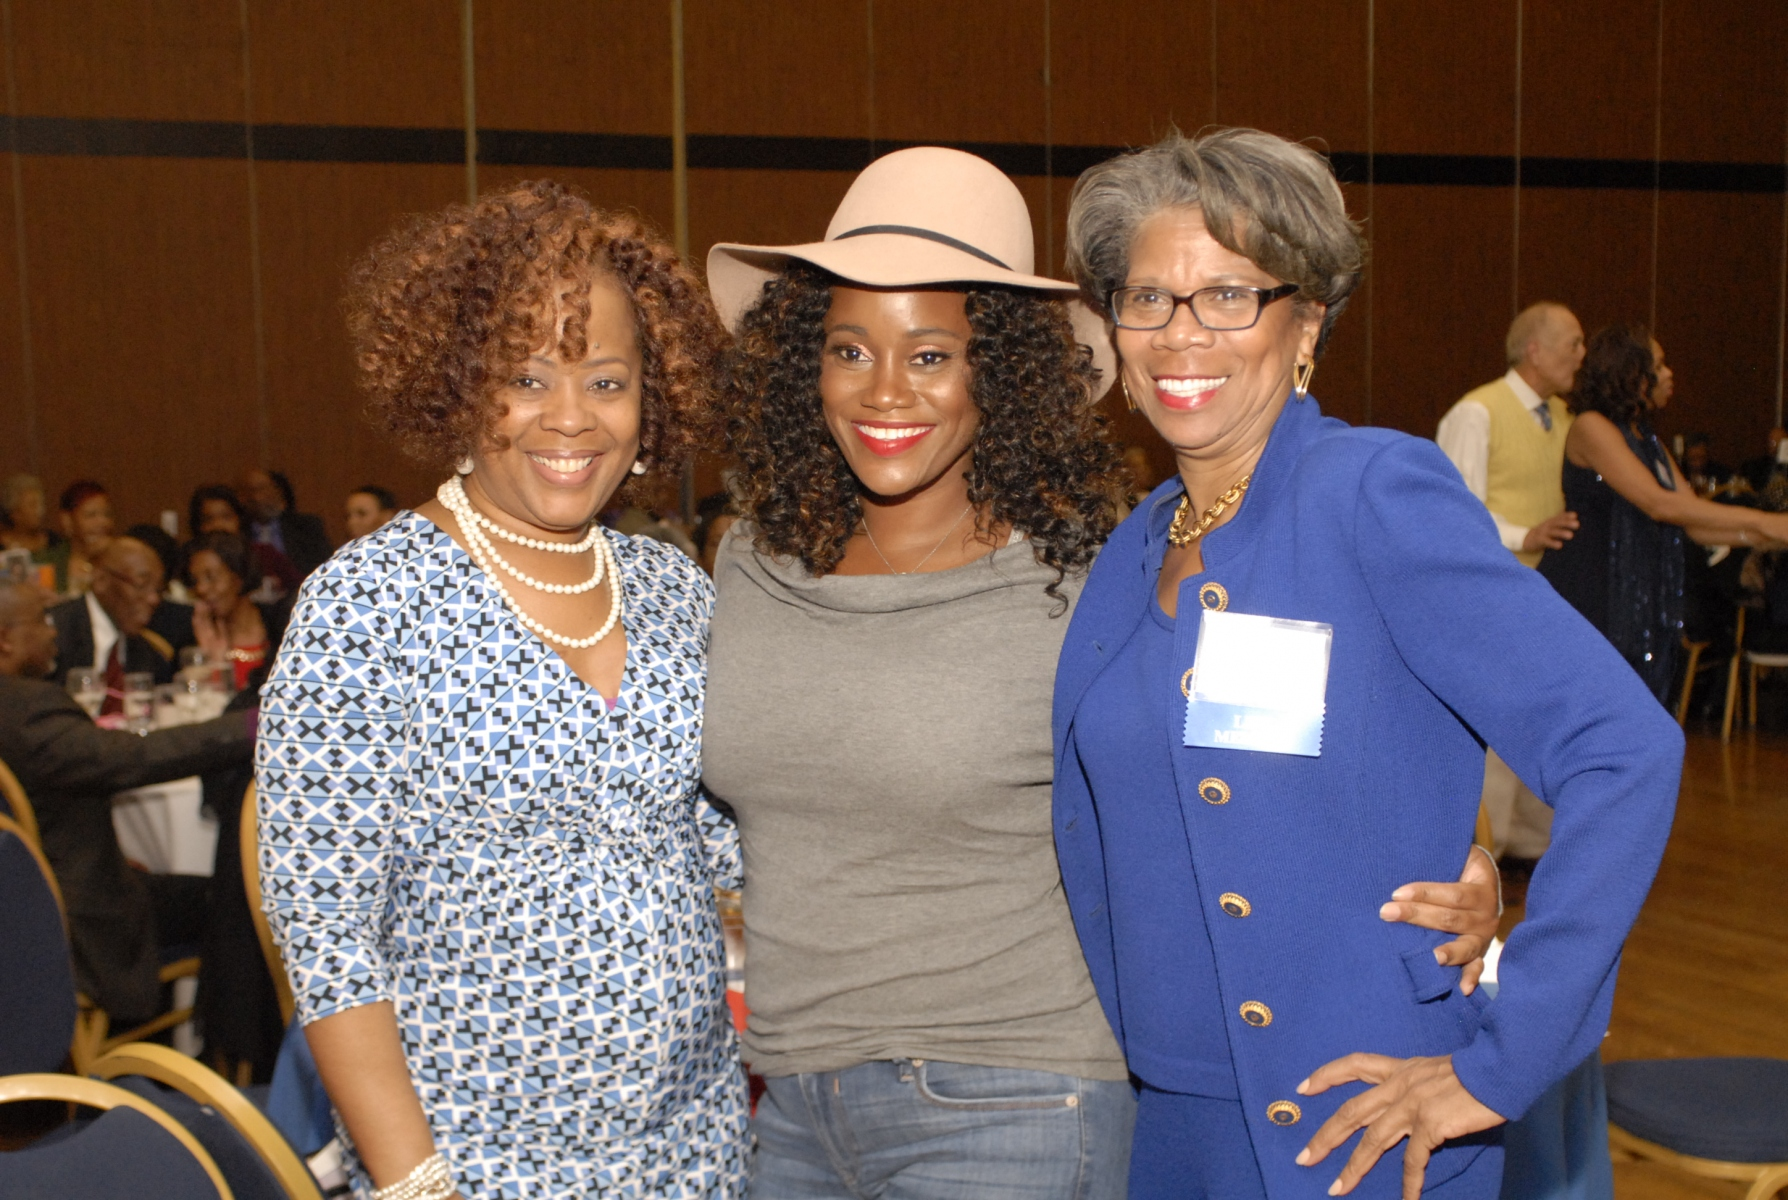 Bernadette-White-Event-Guest-Stephanie-Minor-Harper